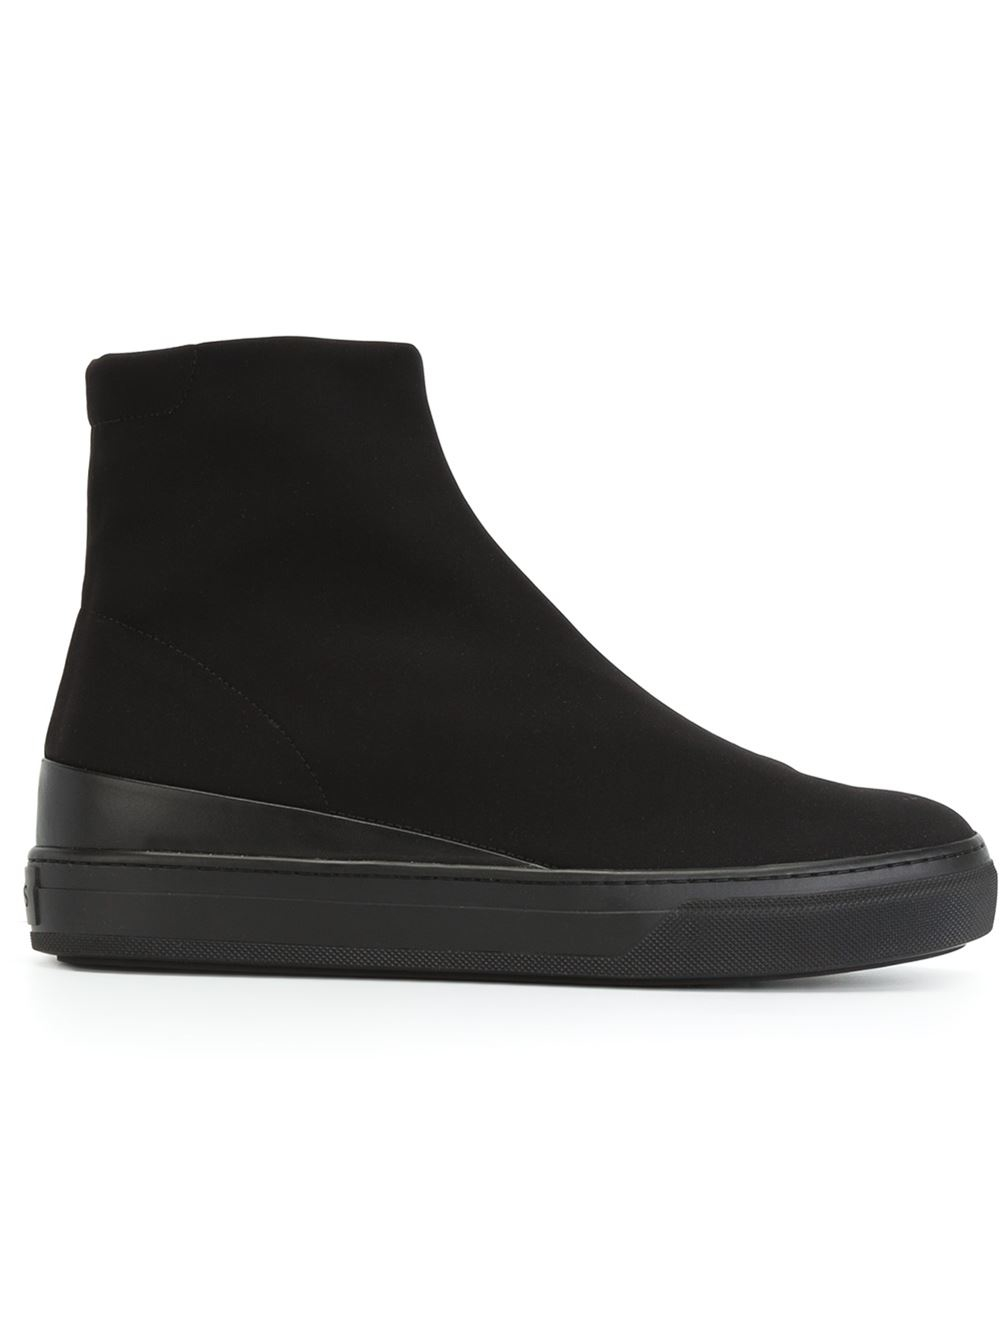 Todu0026#39;s Flat Rubber-Sole Boots In Black | Lyst